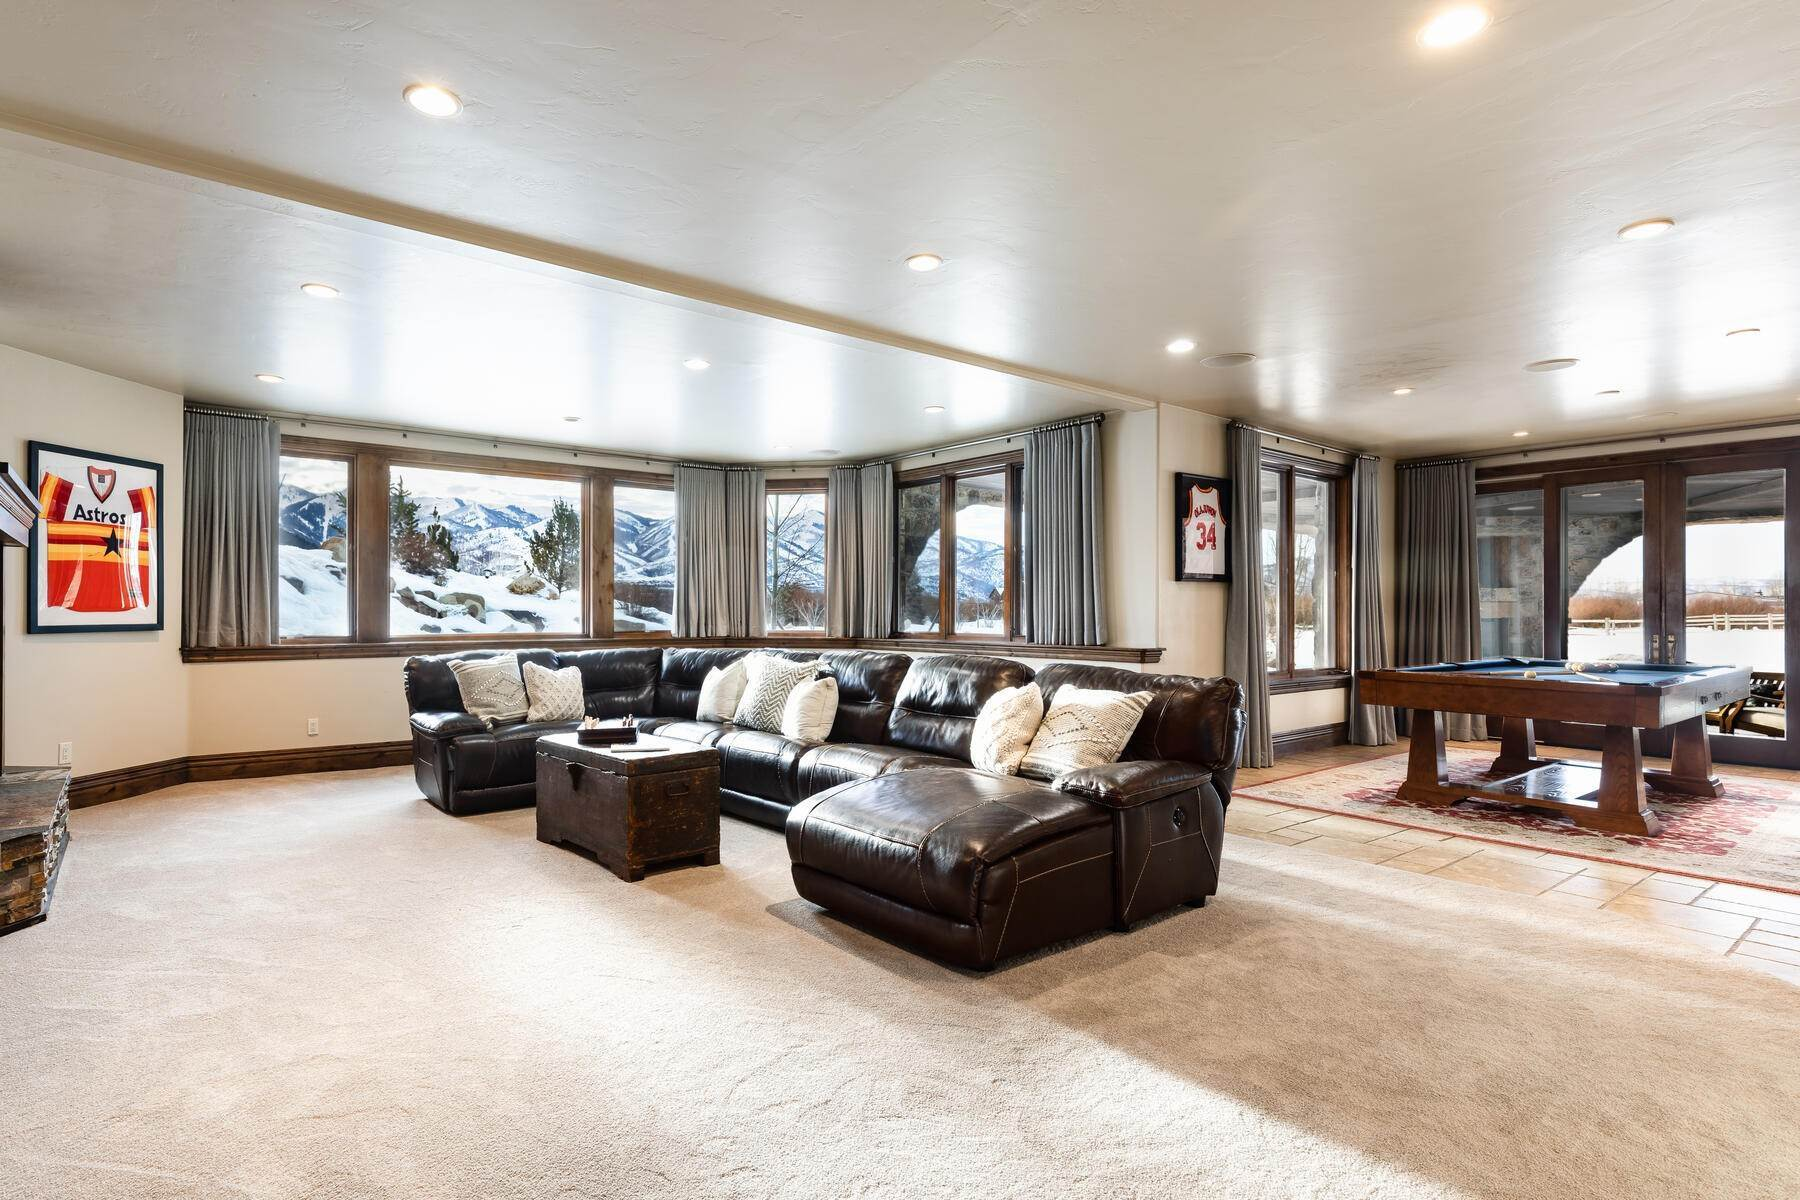 19. Single Family Homes for Sale at Rare Ranch Creek Estates Home Boasts over 3 Acres with Unparalleled Views 4400 N Ranch Creek Ln Park City, Utah 84098 United States